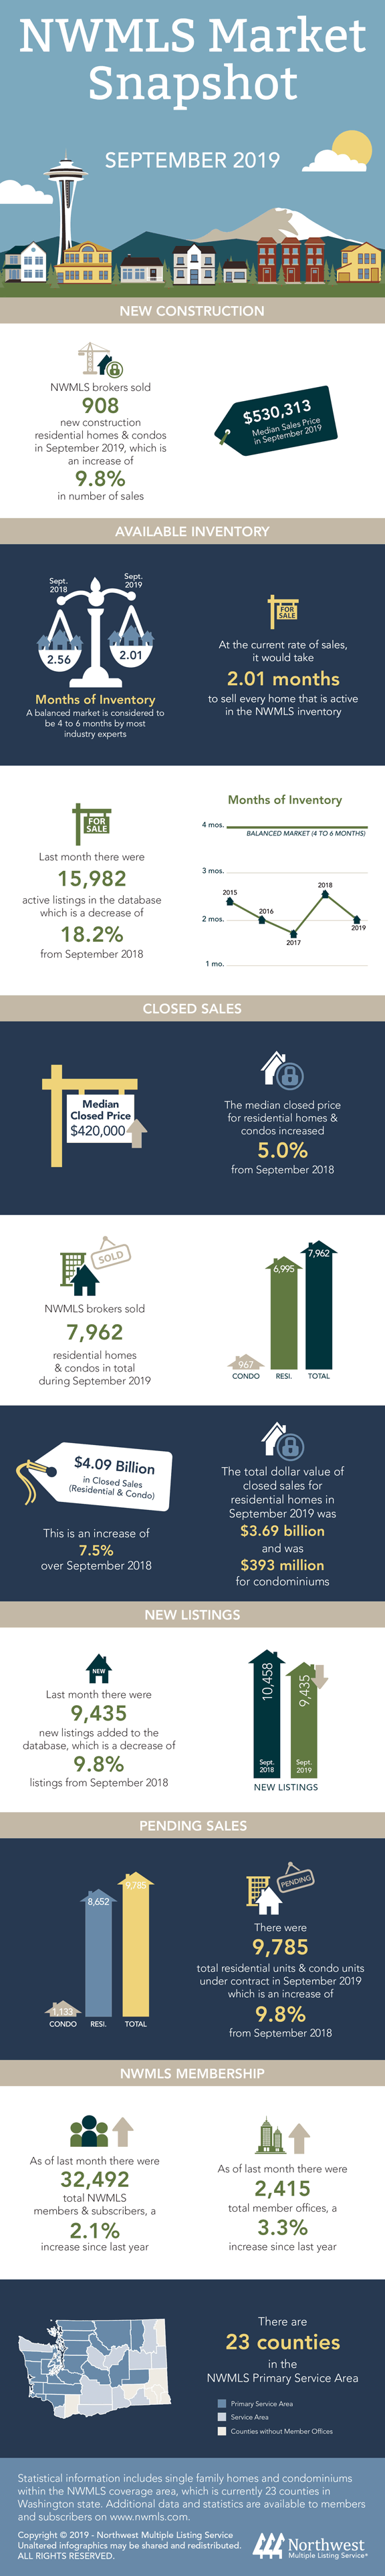 Market Update - NWMLS Snapshot September 2019